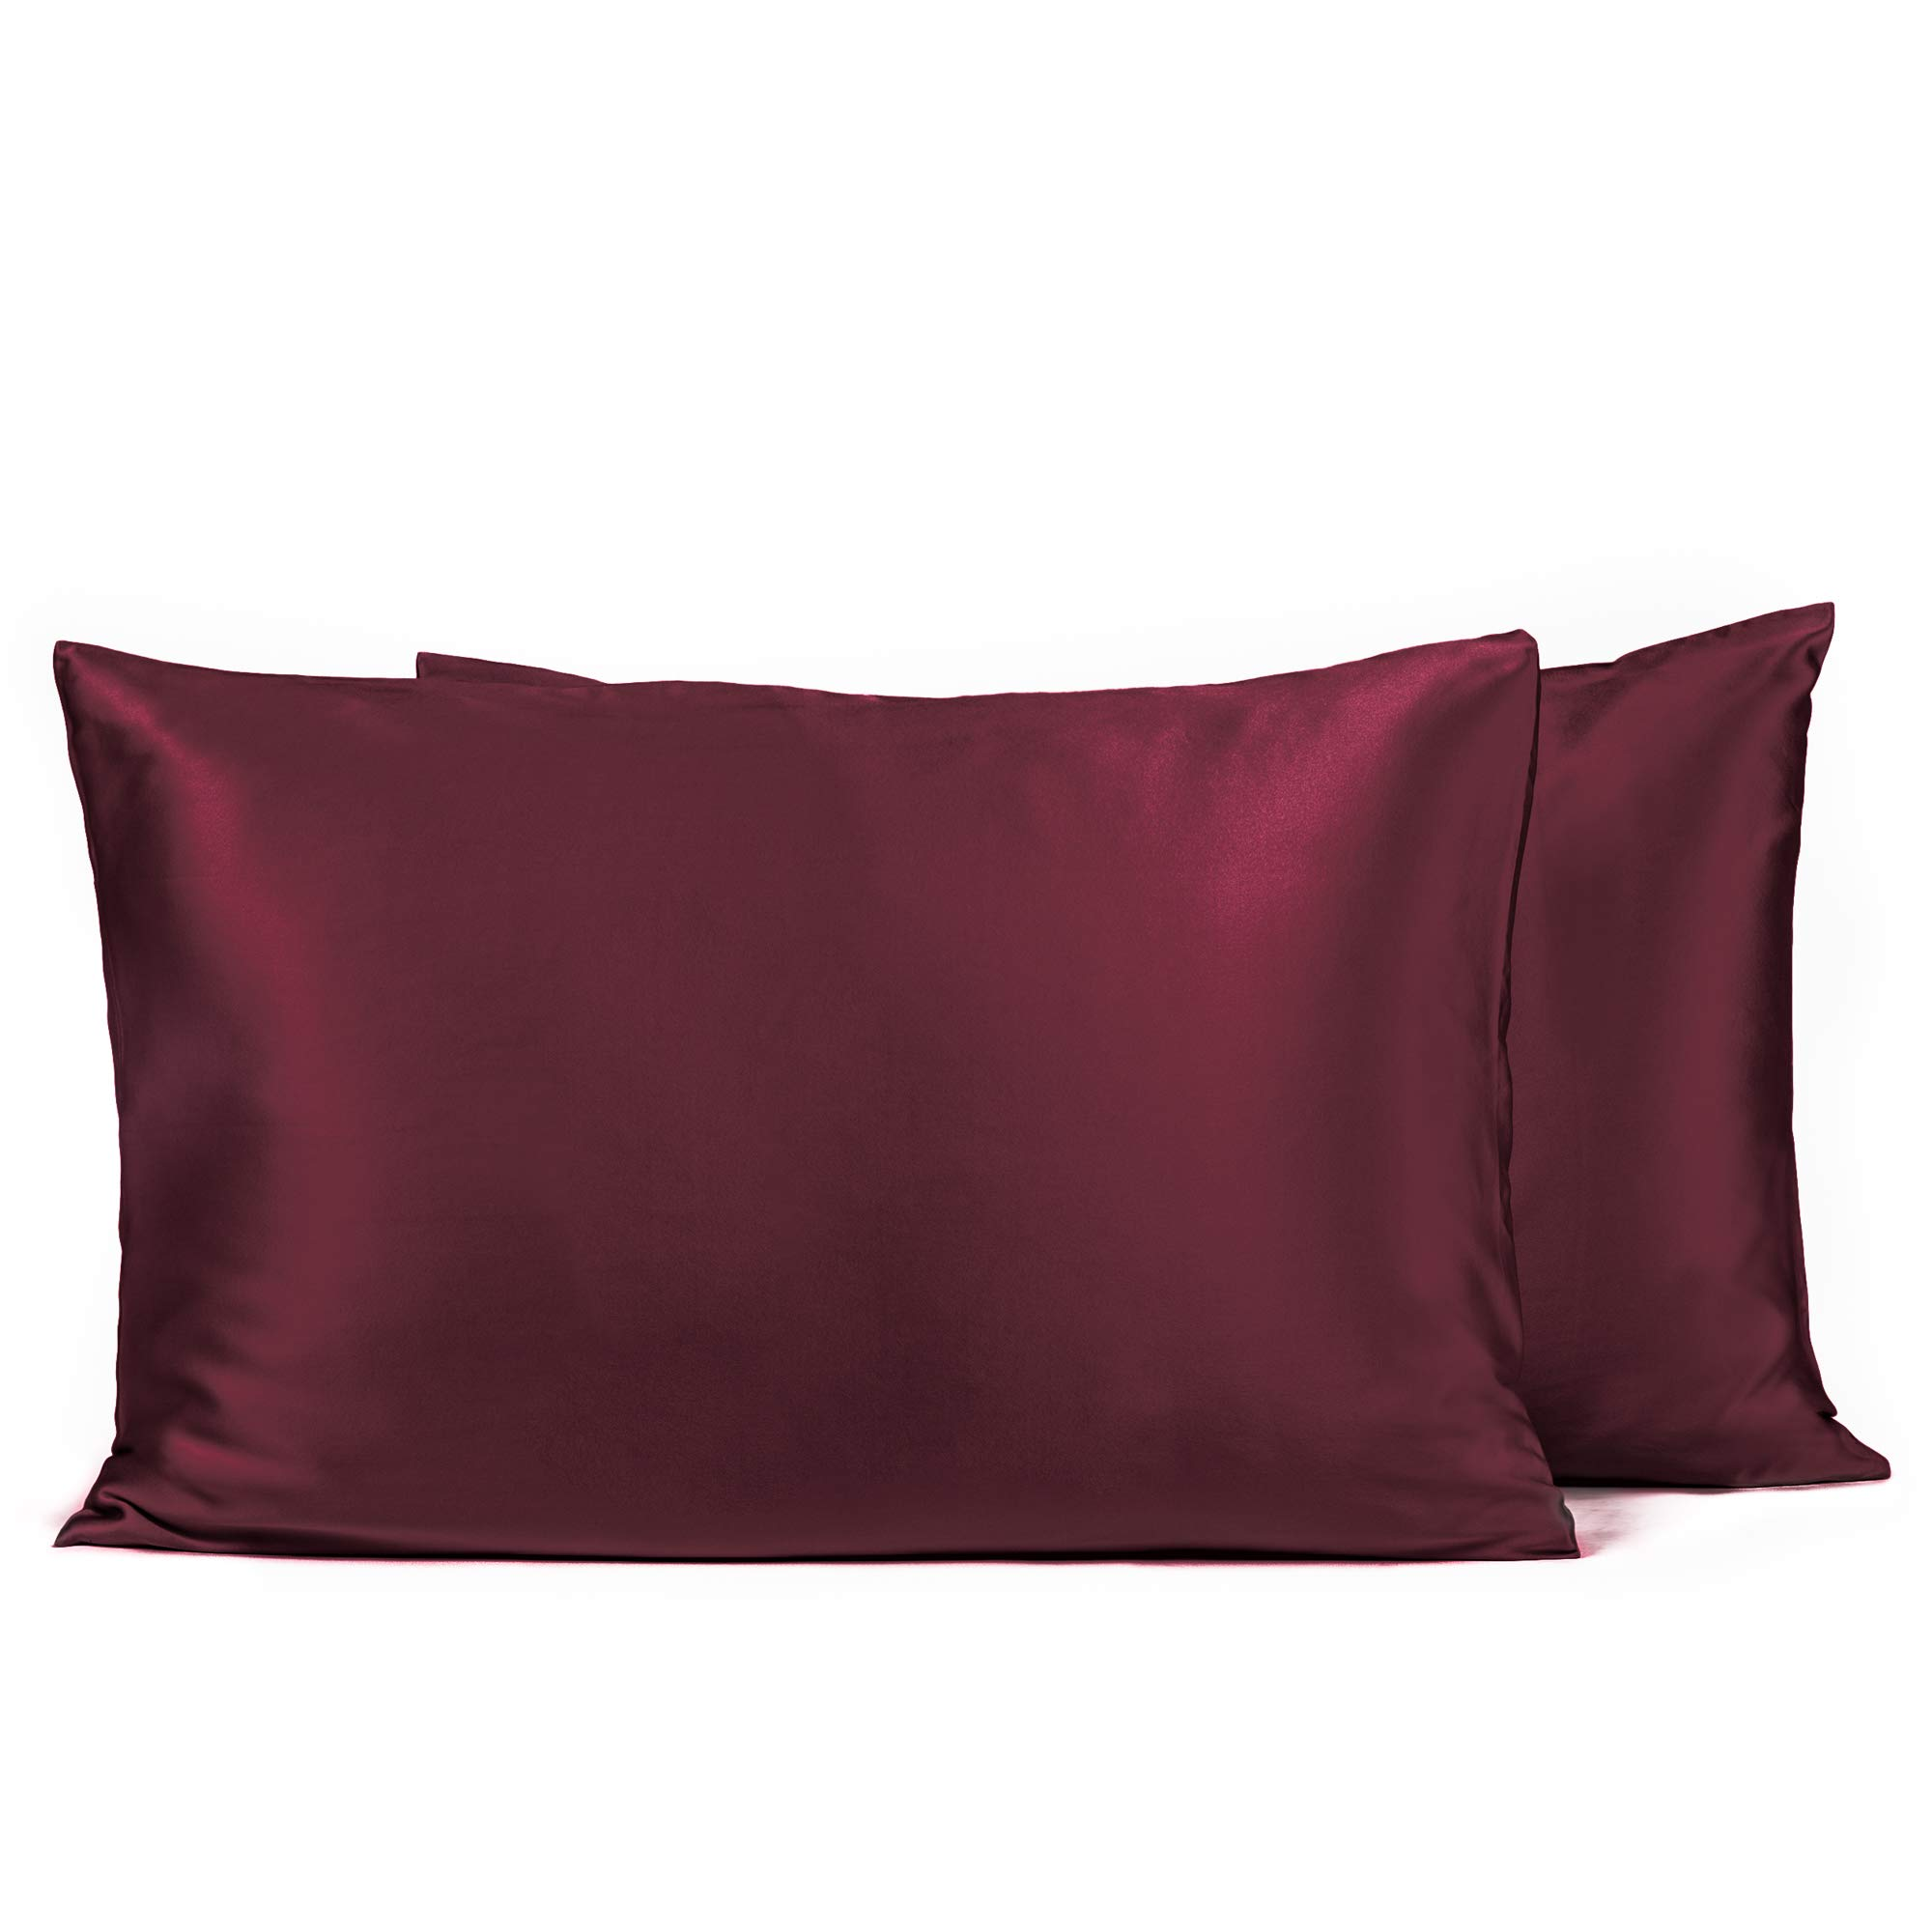 Fishers Finery 25mm 100% Pure Mulberry Silk Pillowcase, Good Housekeeping Winner (Red, Queen 2 Pack)